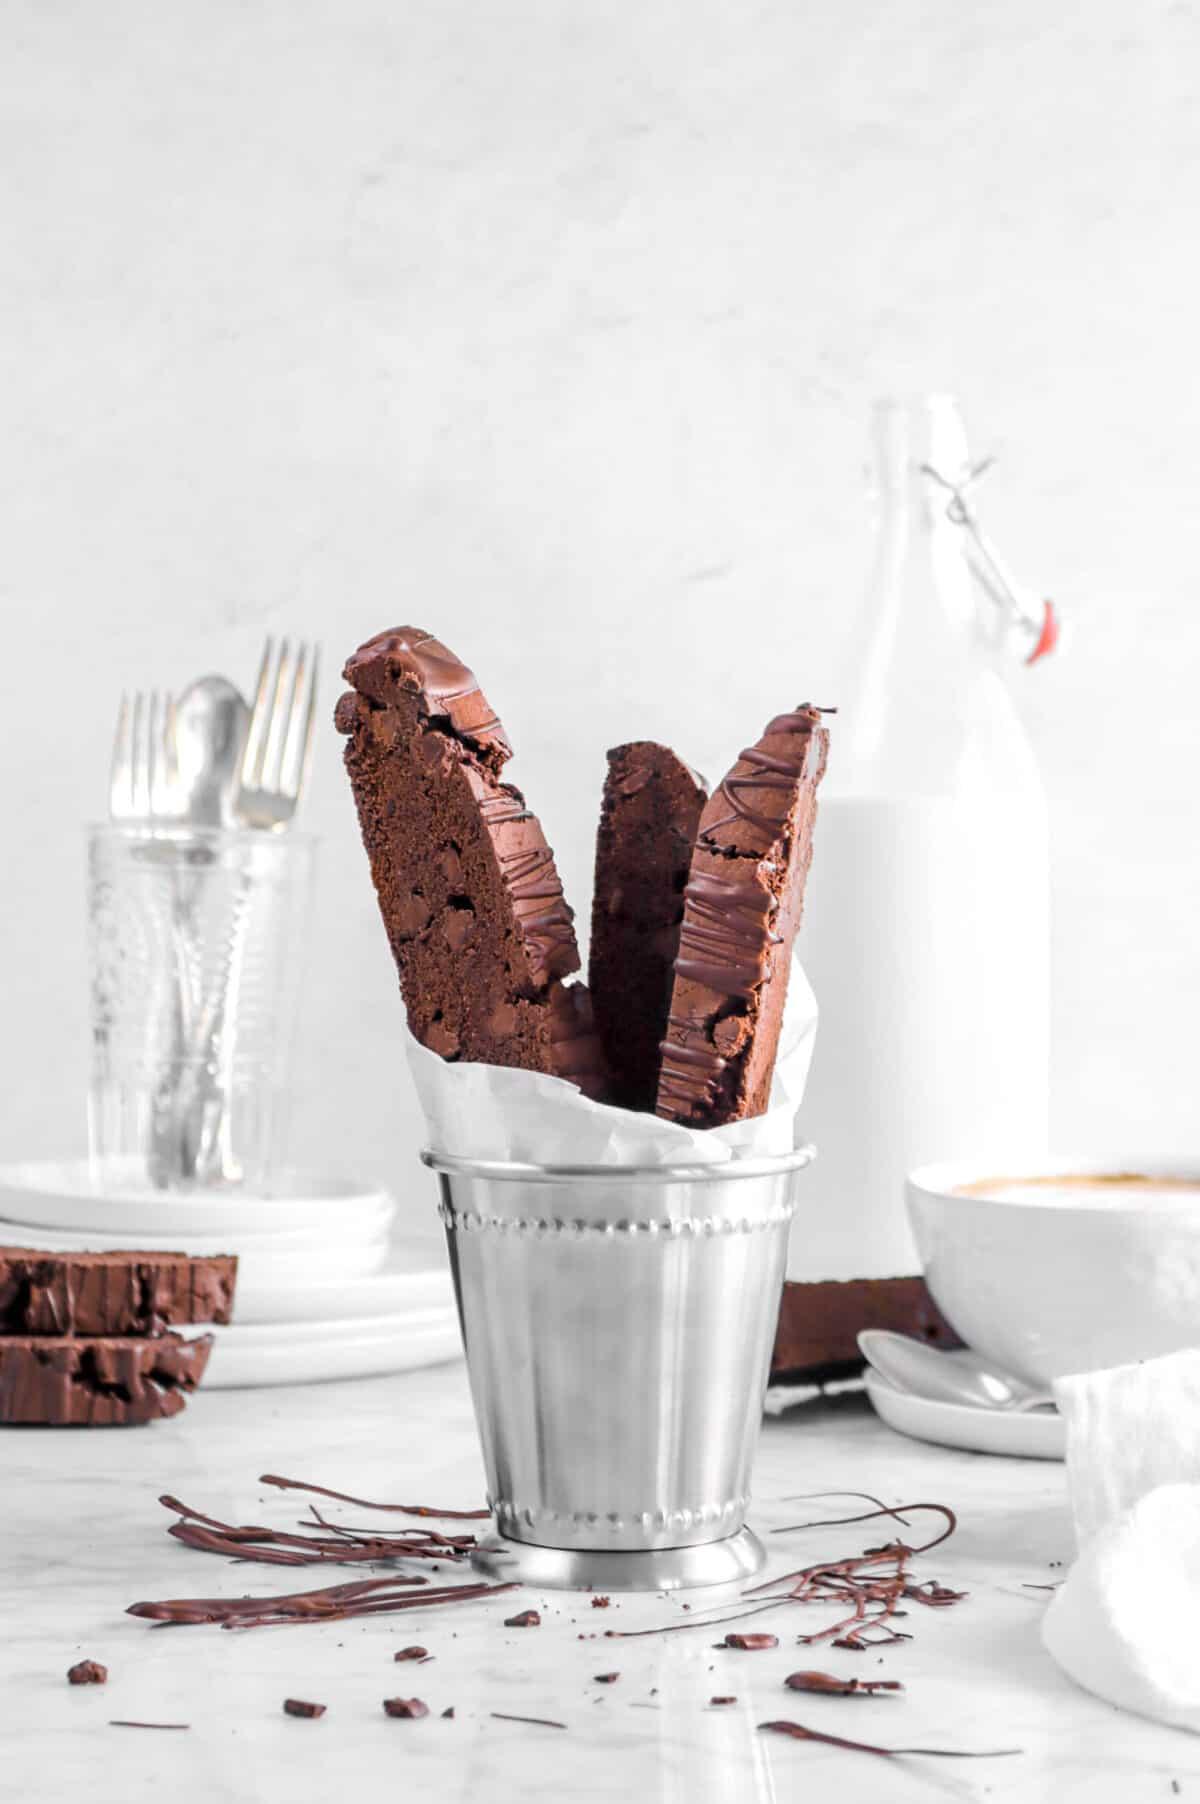 chocolate biscotti in metal cup with chocolate drizzle, a white napkin, mug of coffee, milk glass, and utensils behind